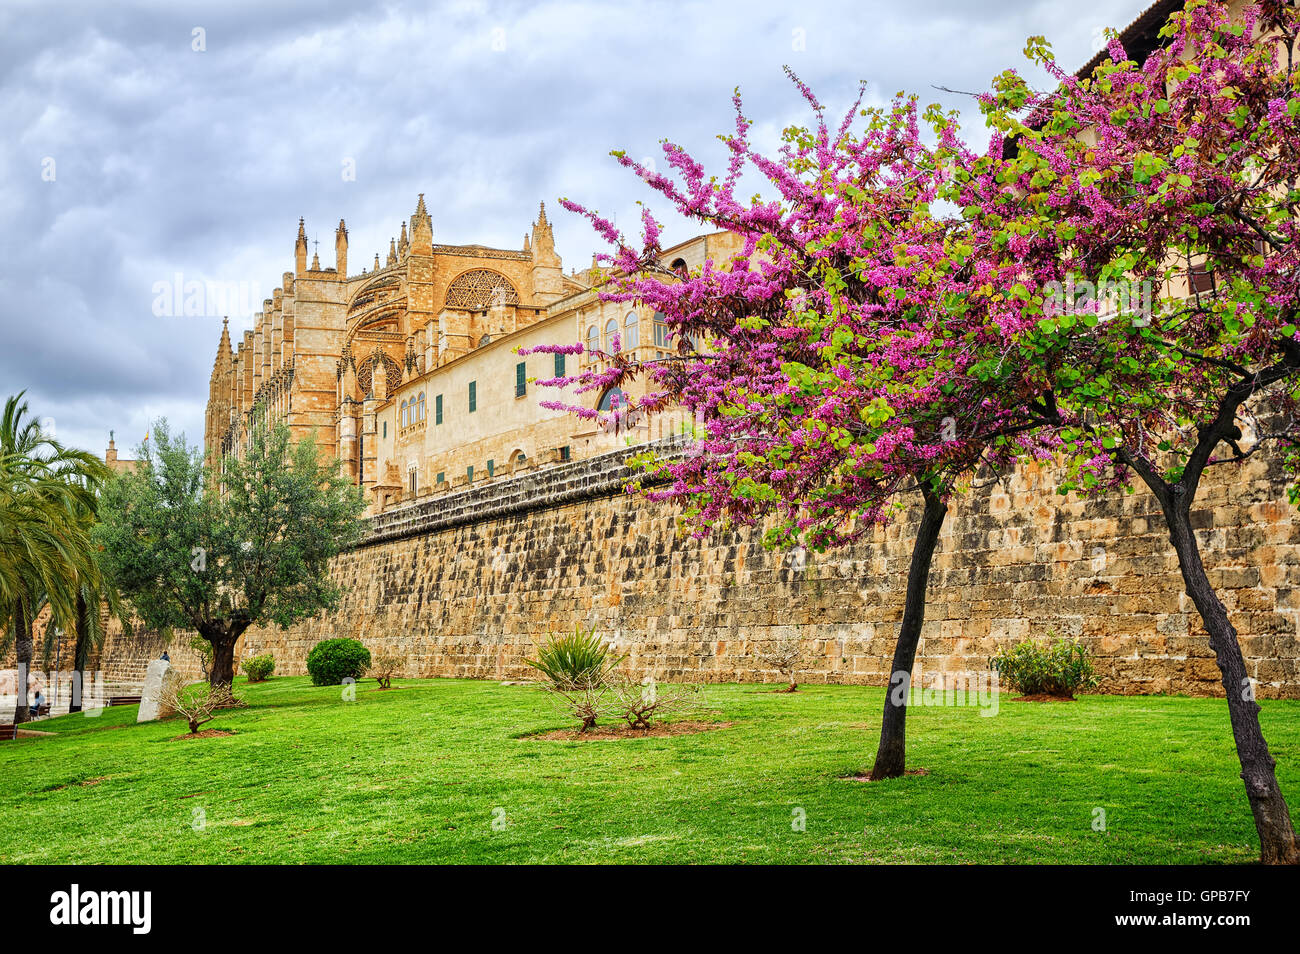 Red blooming cherry tree in front of La Seu, the cathedral of Palma de Mallorca, Spain - Stock Image